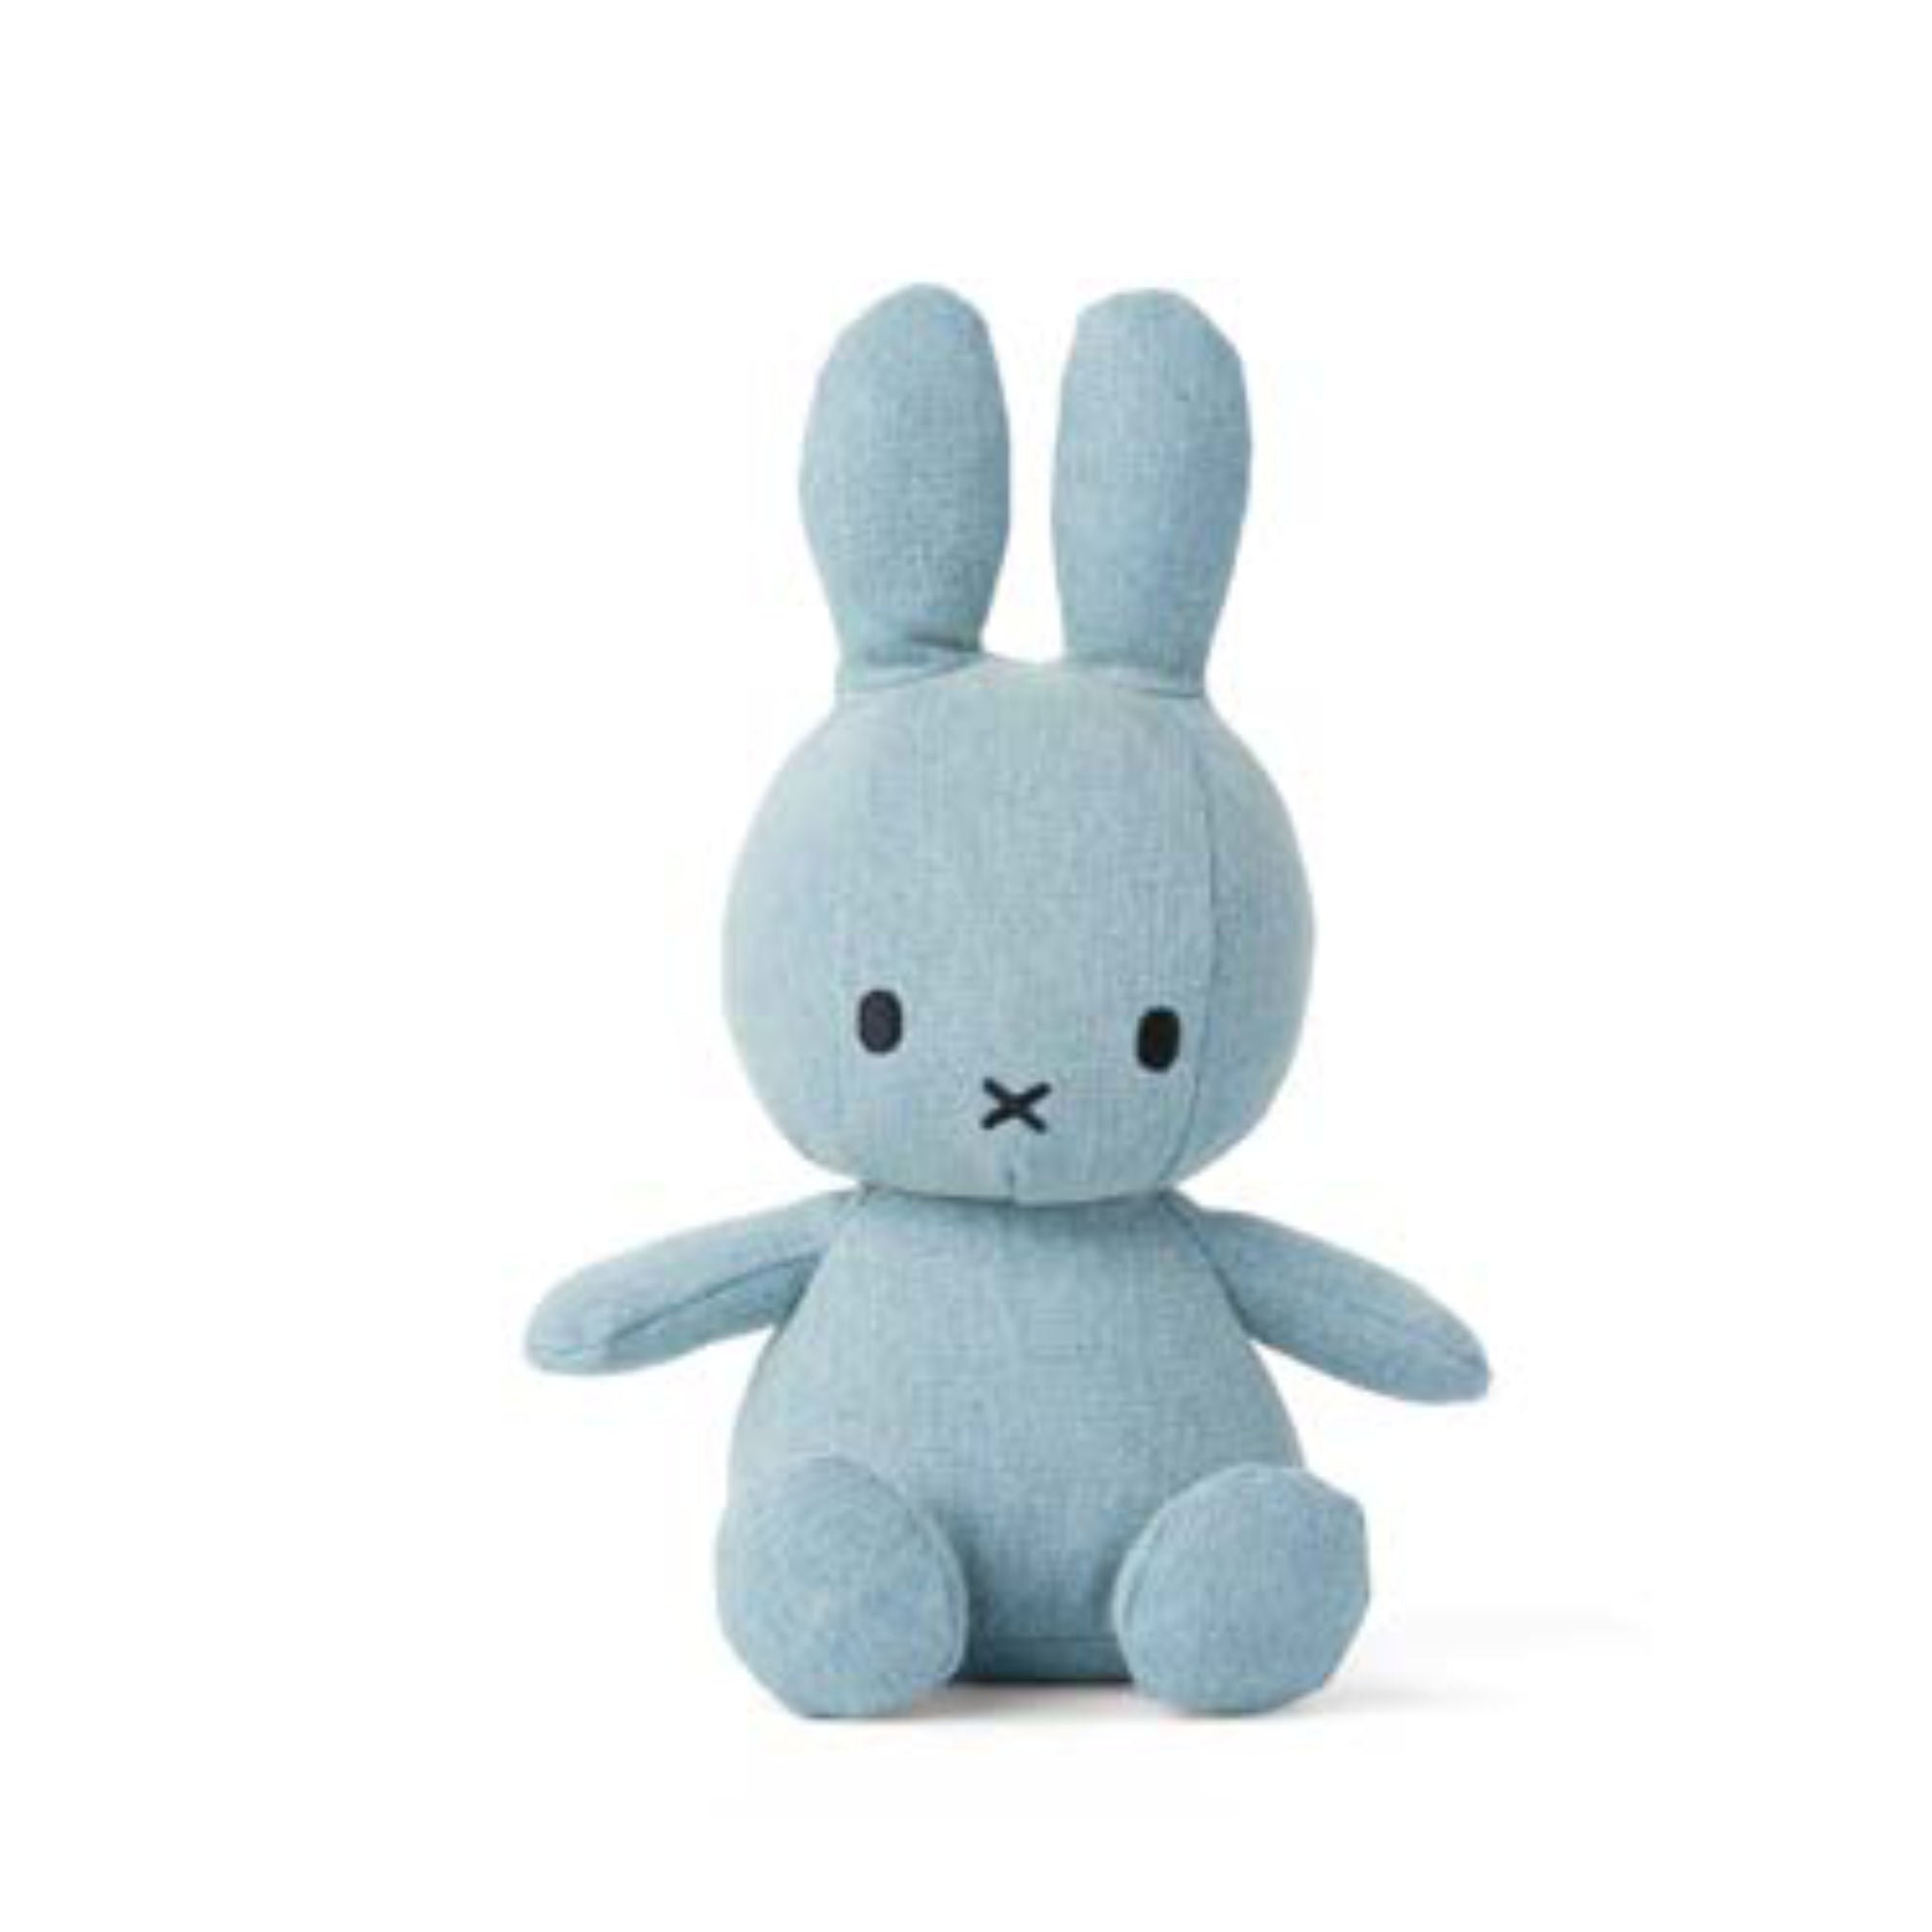 Miffy Denim Plush 23cm , Light Wash